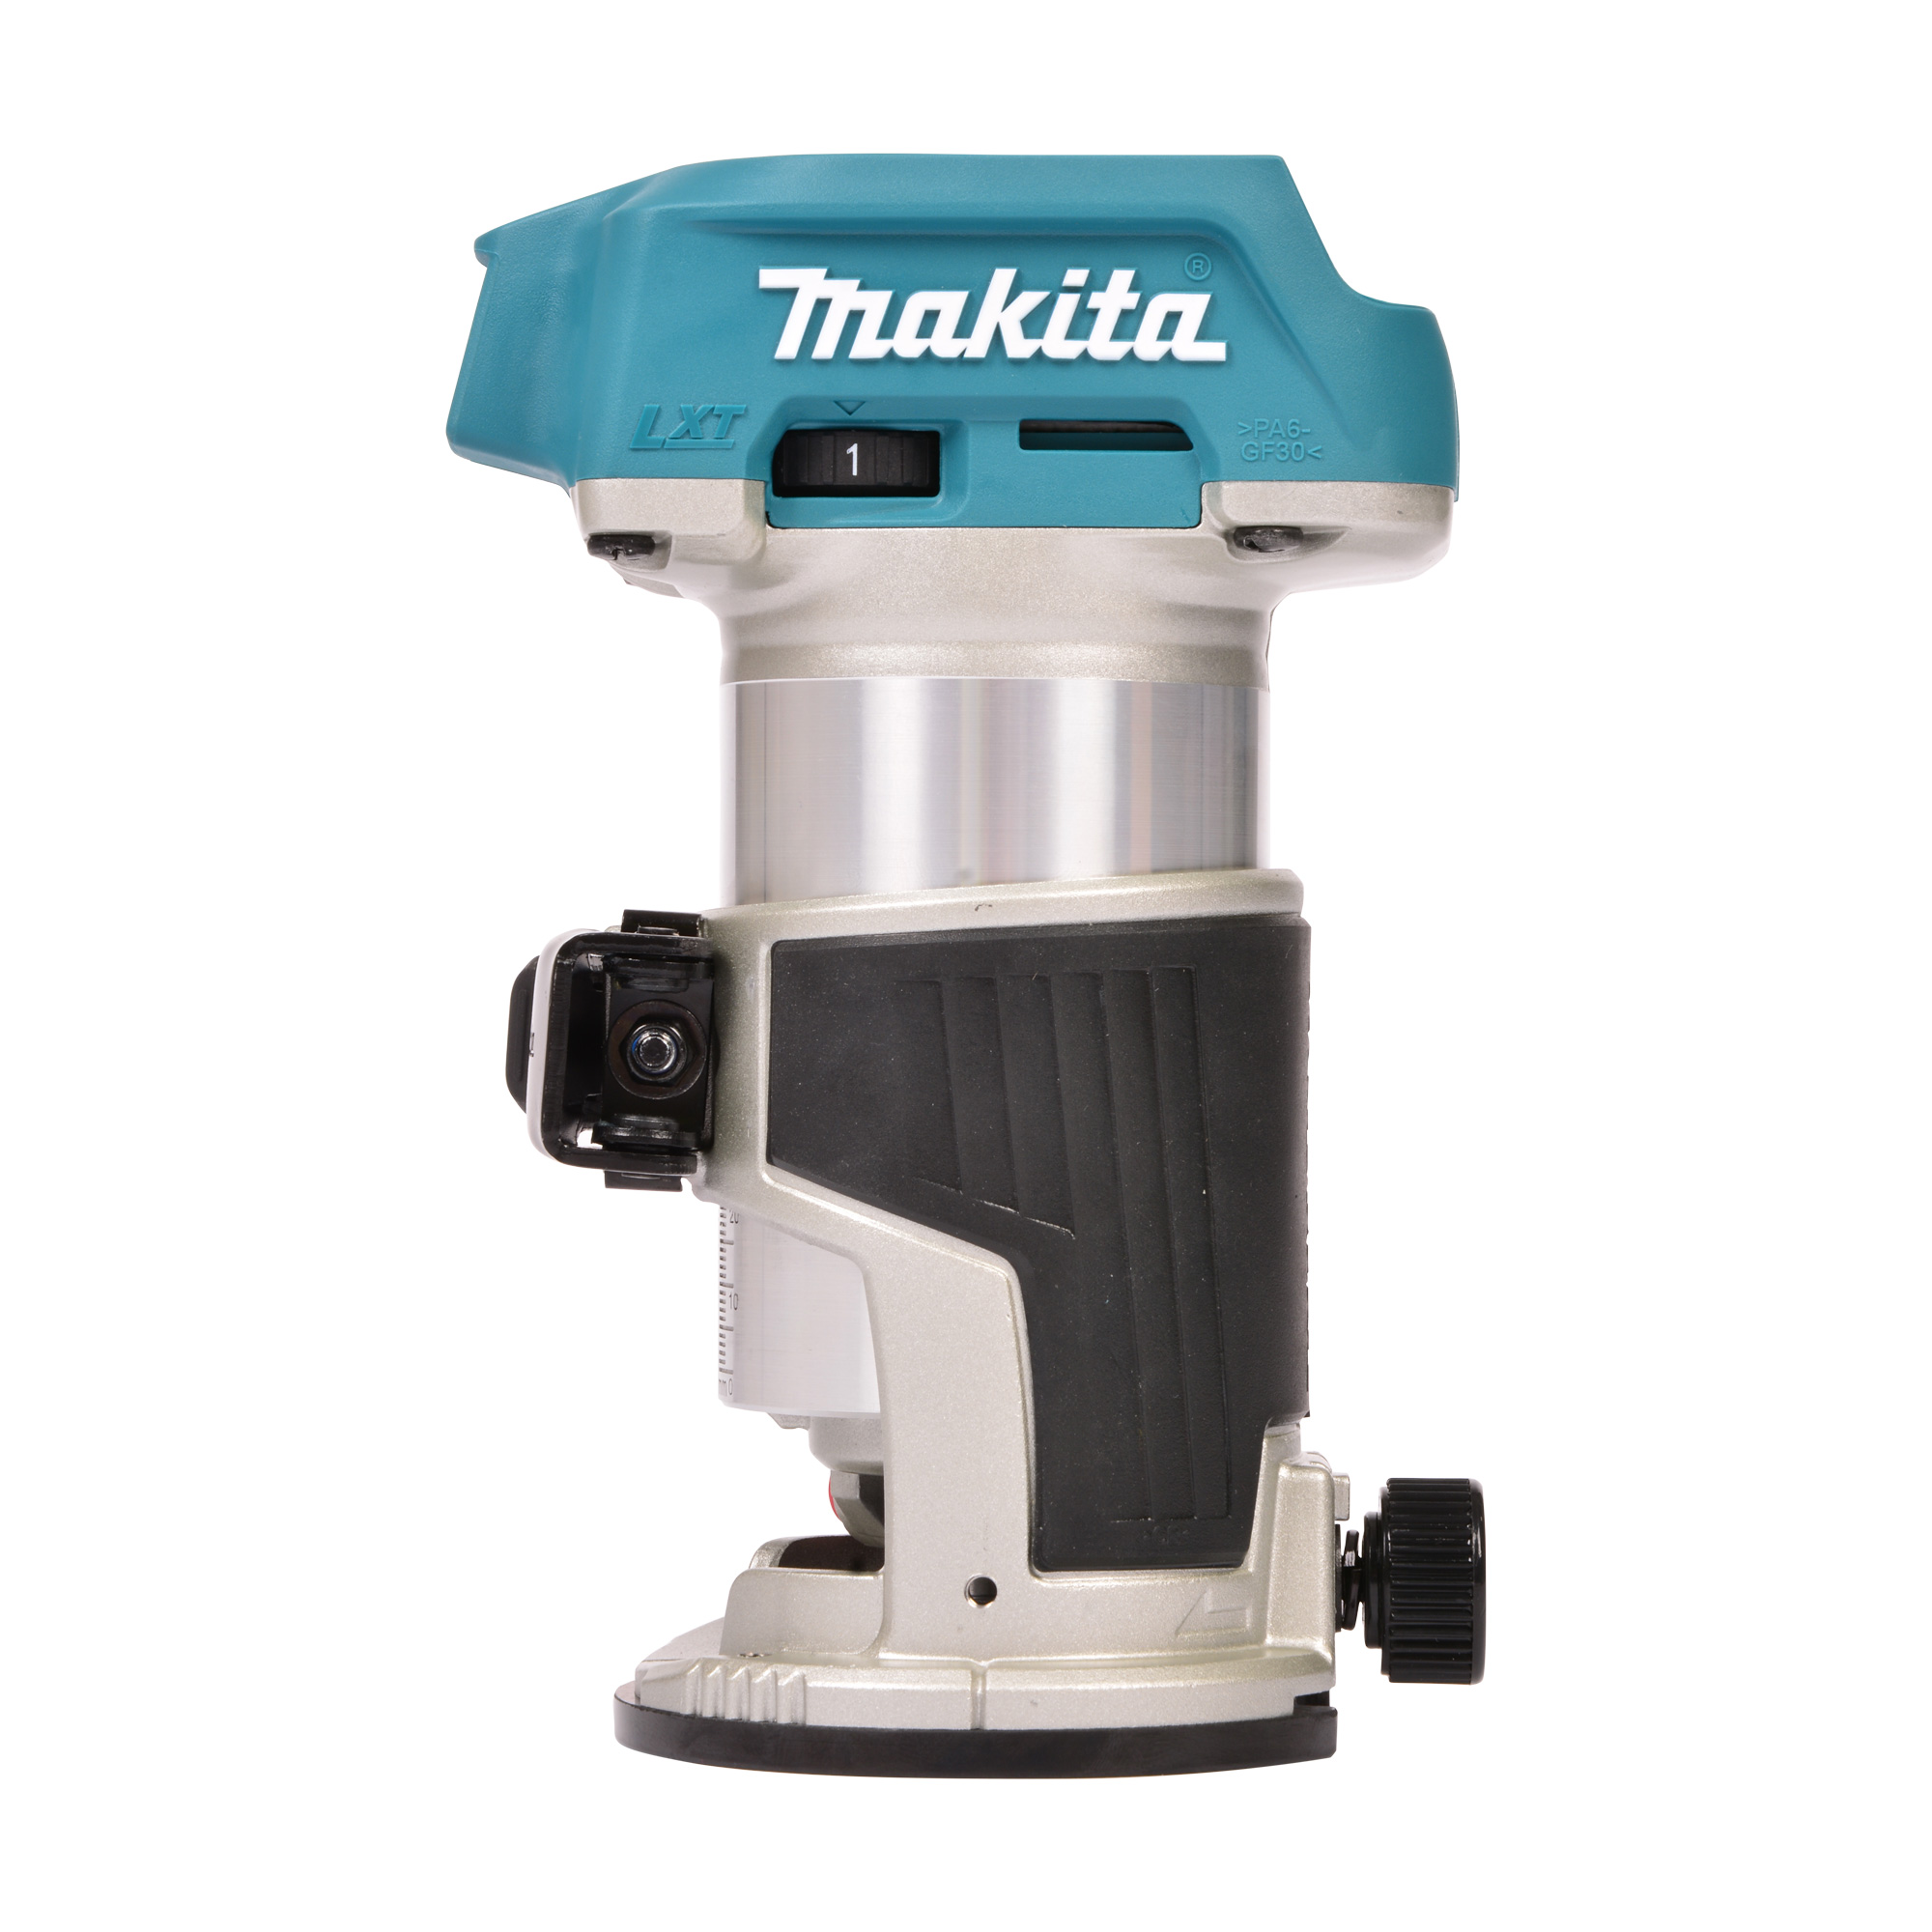 makita drt50zjx3 makita 18v cordless brushless router. Black Bedroom Furniture Sets. Home Design Ideas